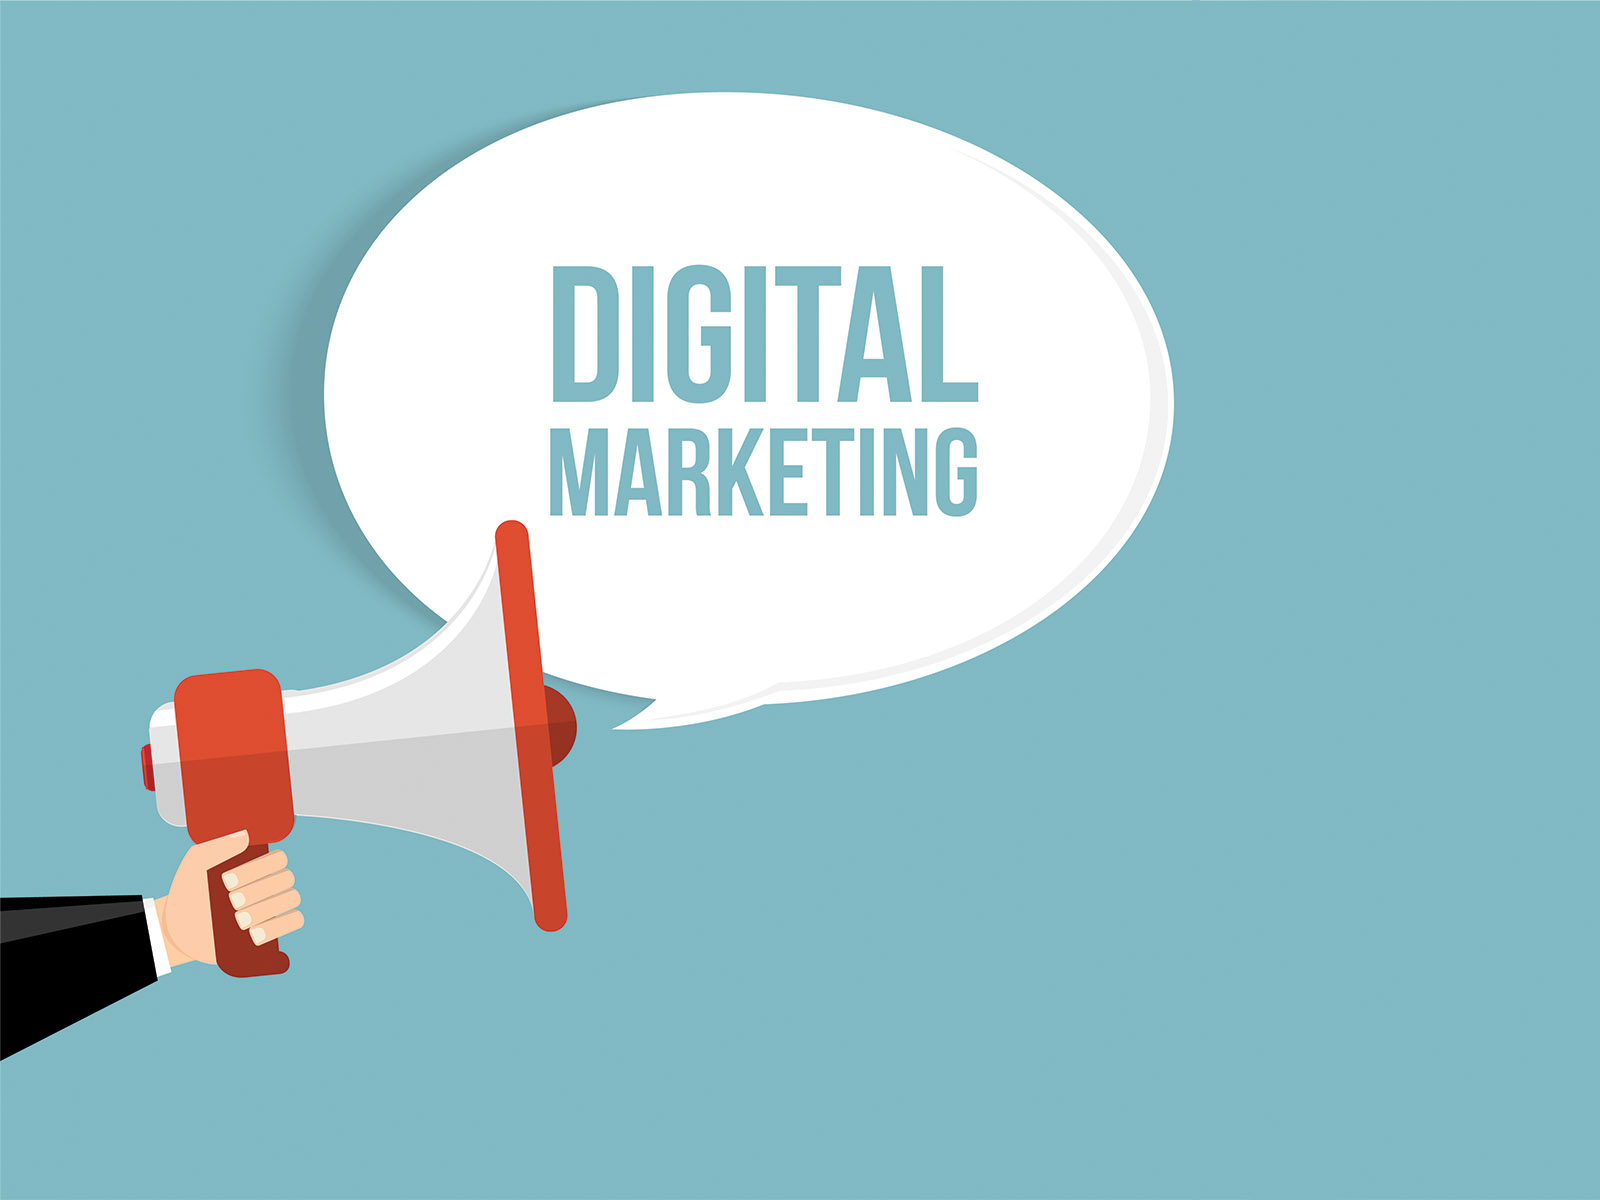 Digital-Marketing-Backgrounds.jpg